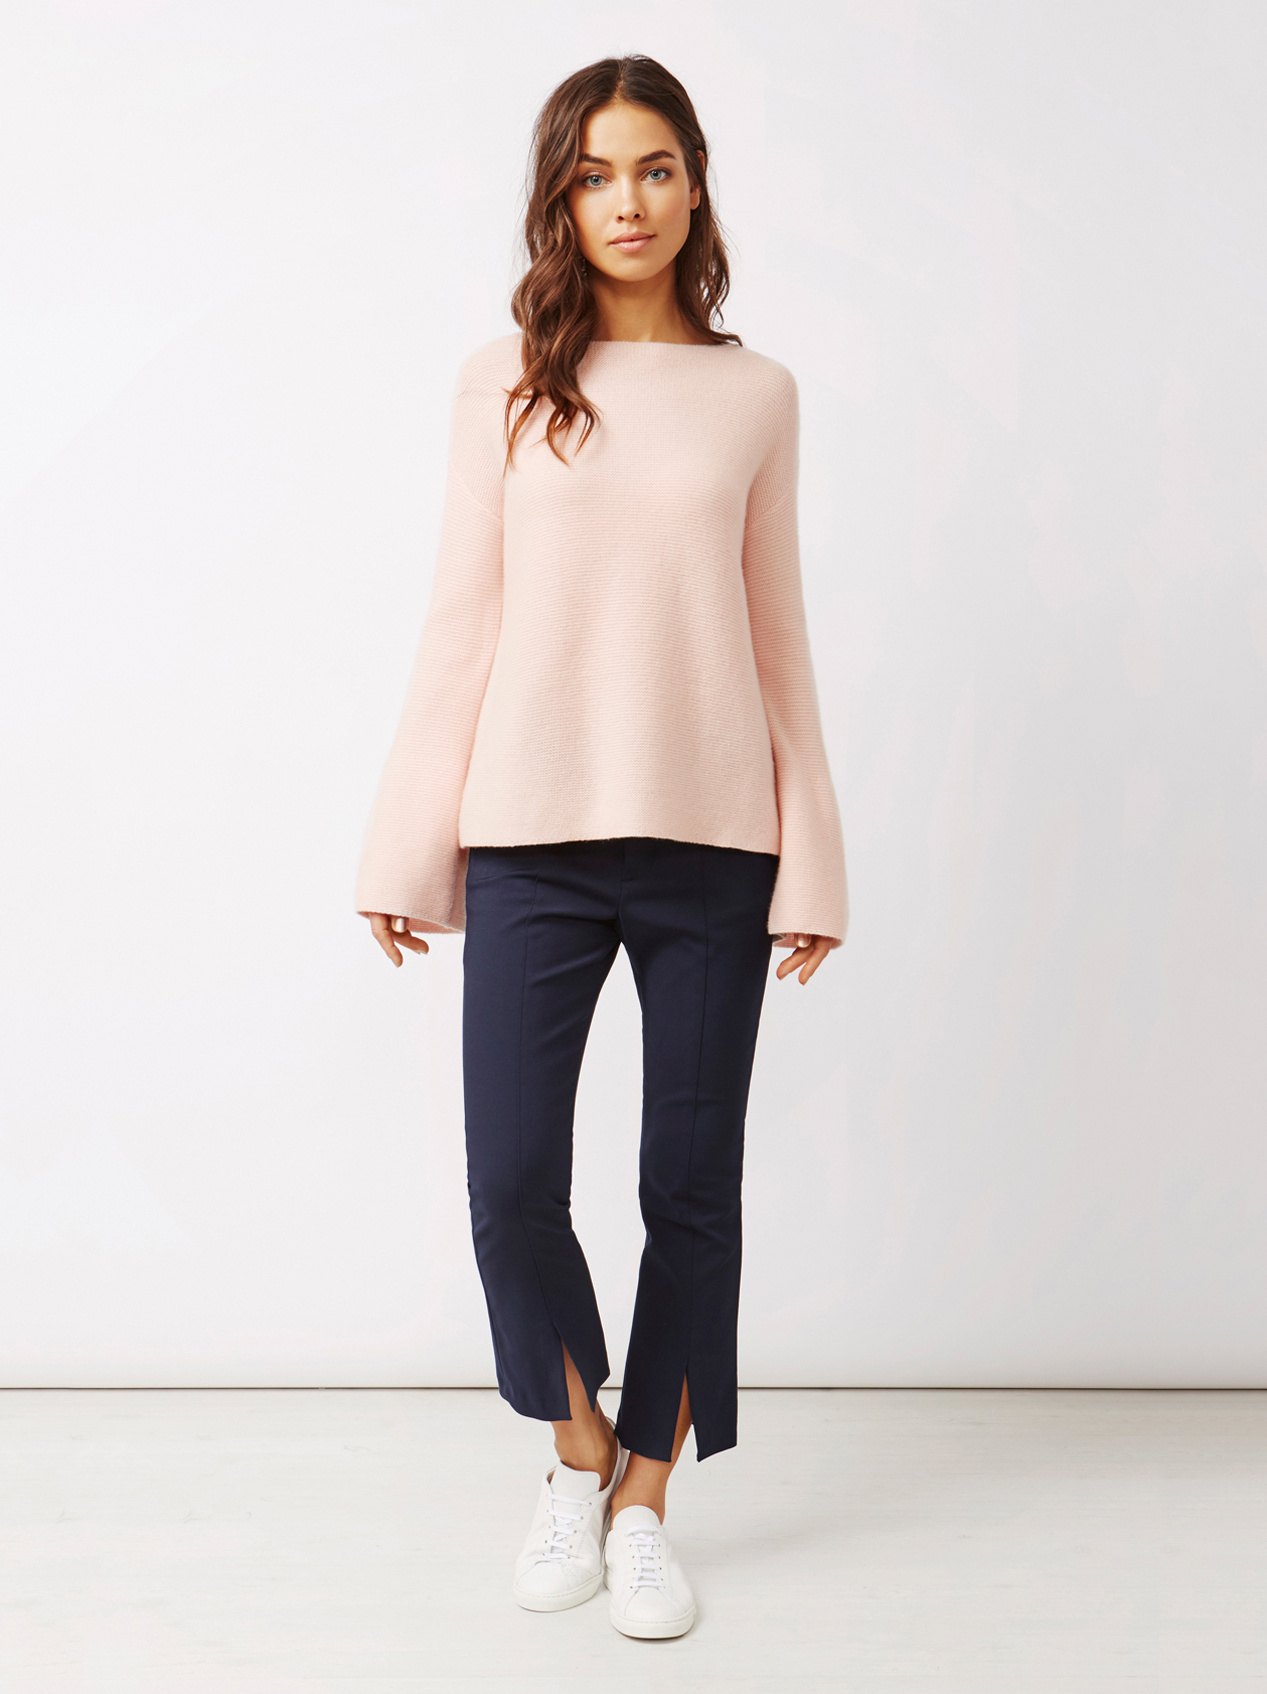 Soft Goat Women's Chunky Boatneck Powder